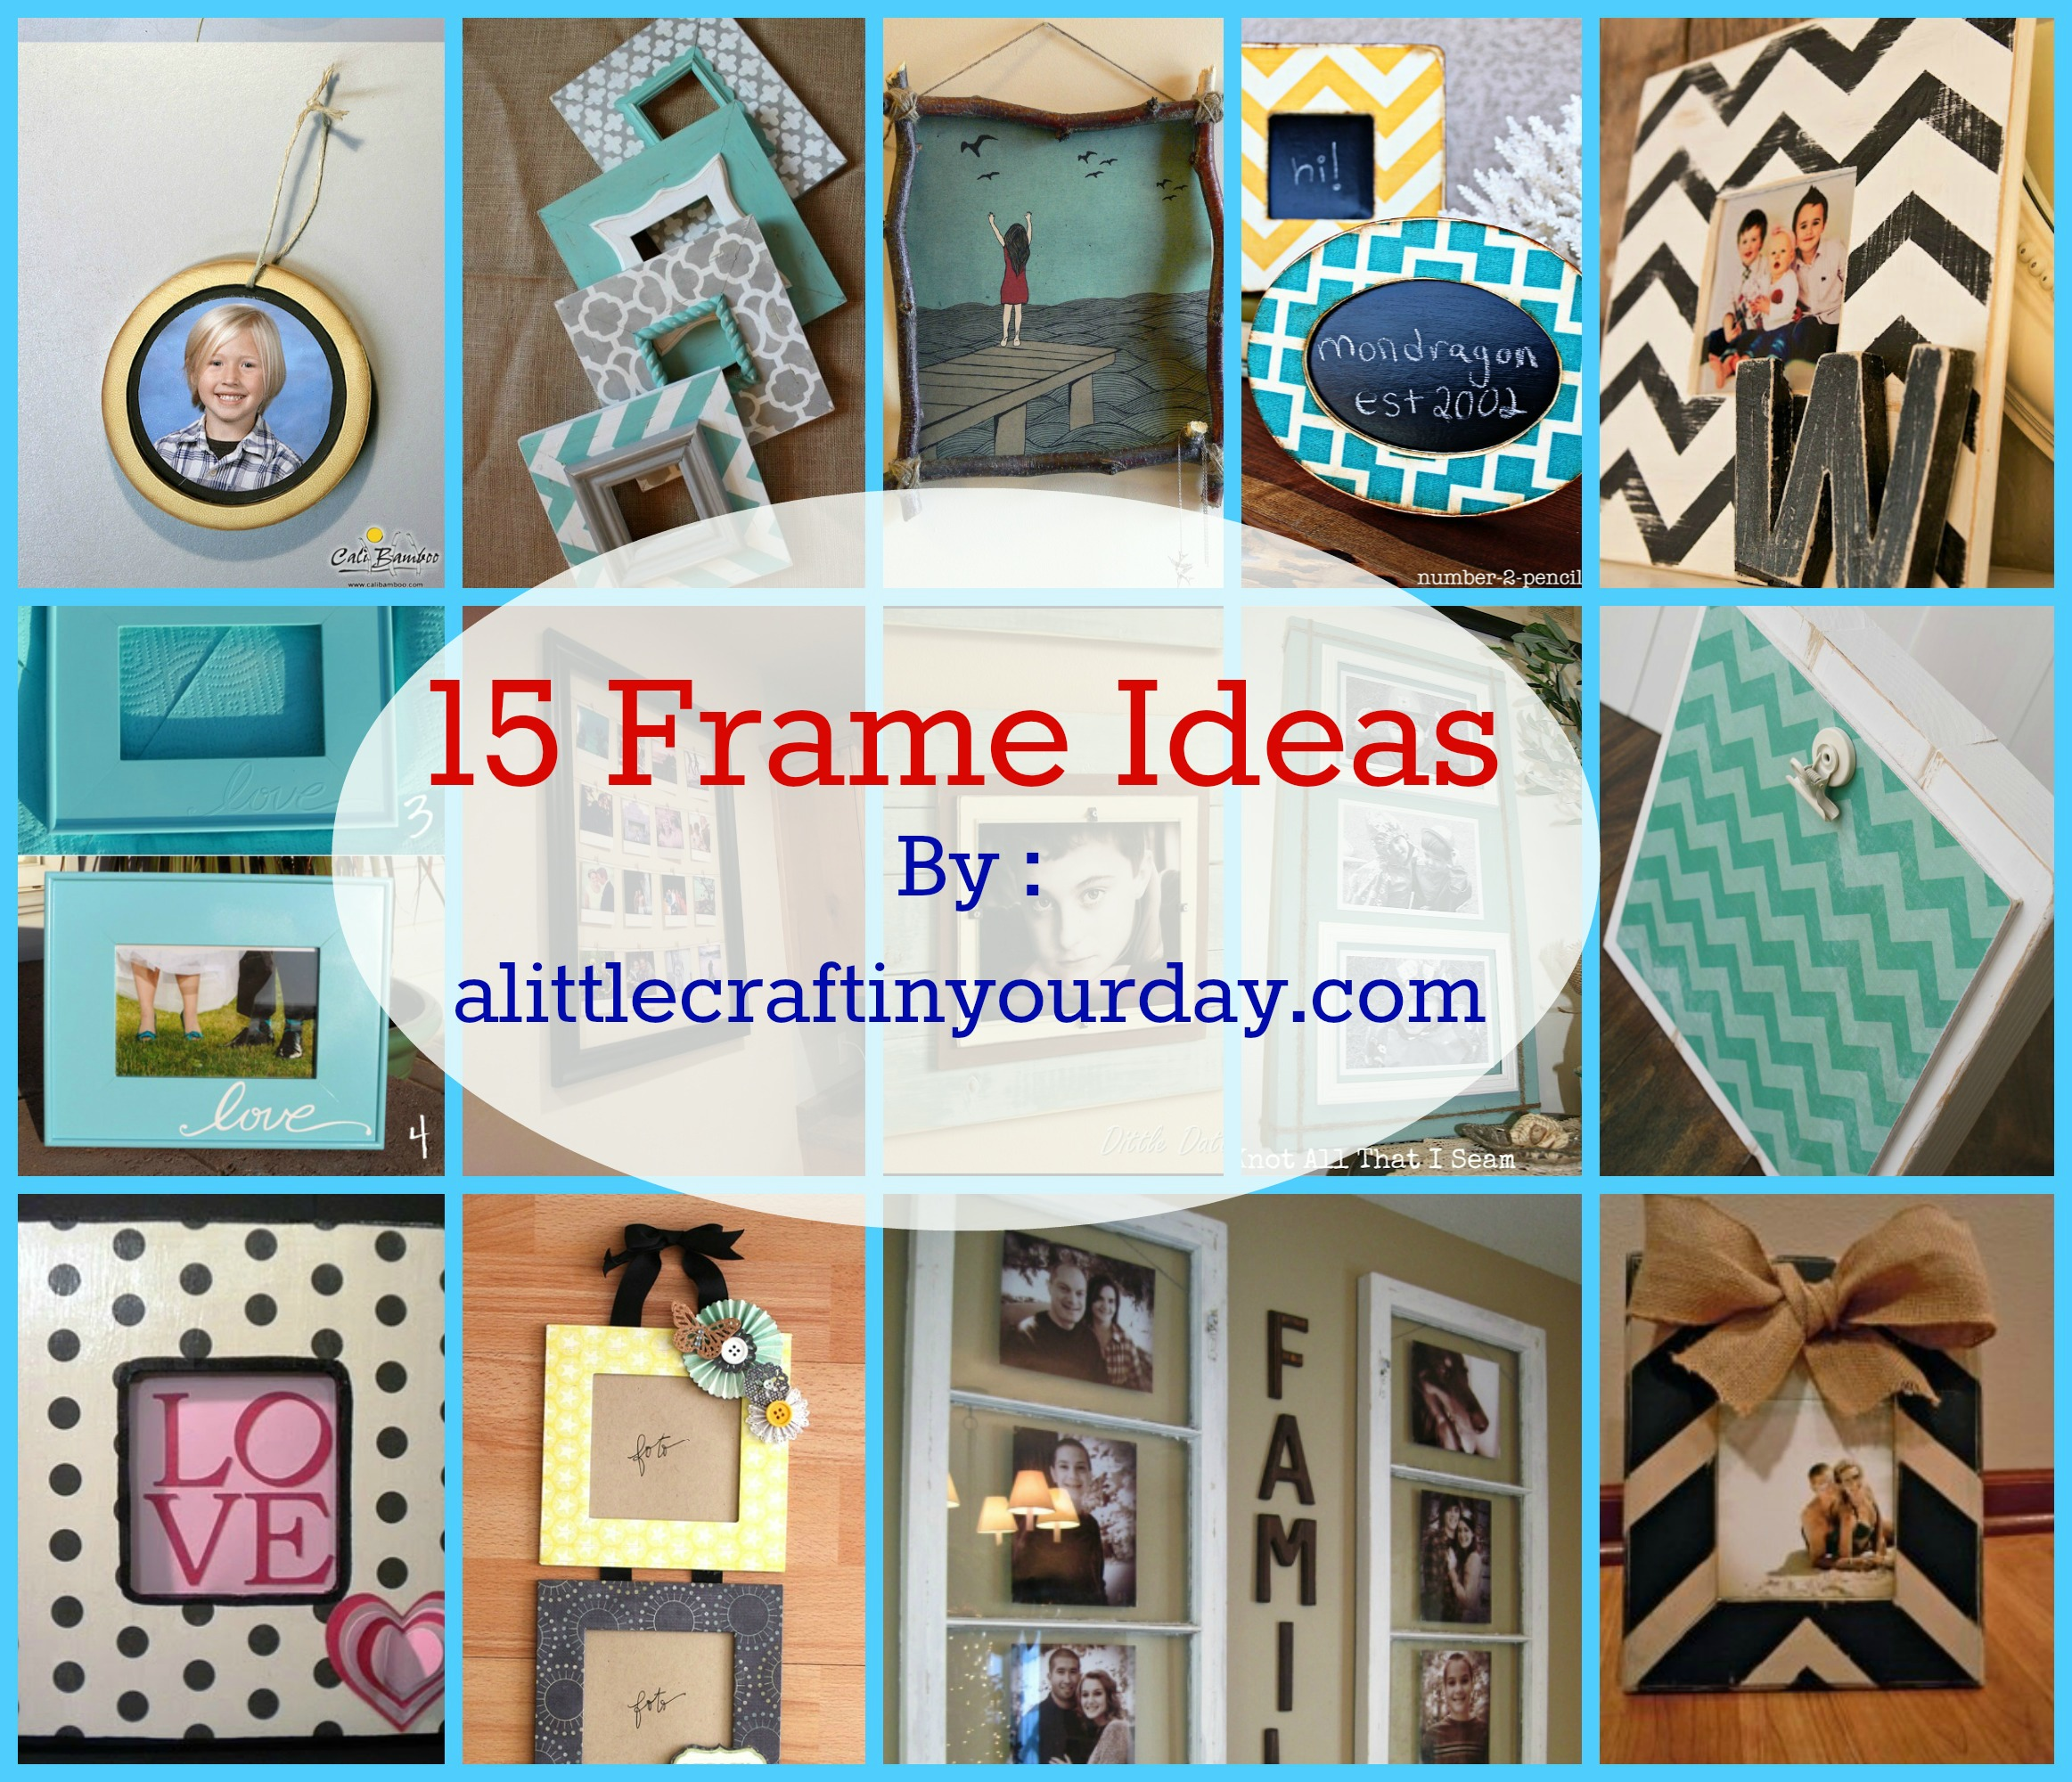 630 14 photo frame ideas - Picture Frame Design Ideas